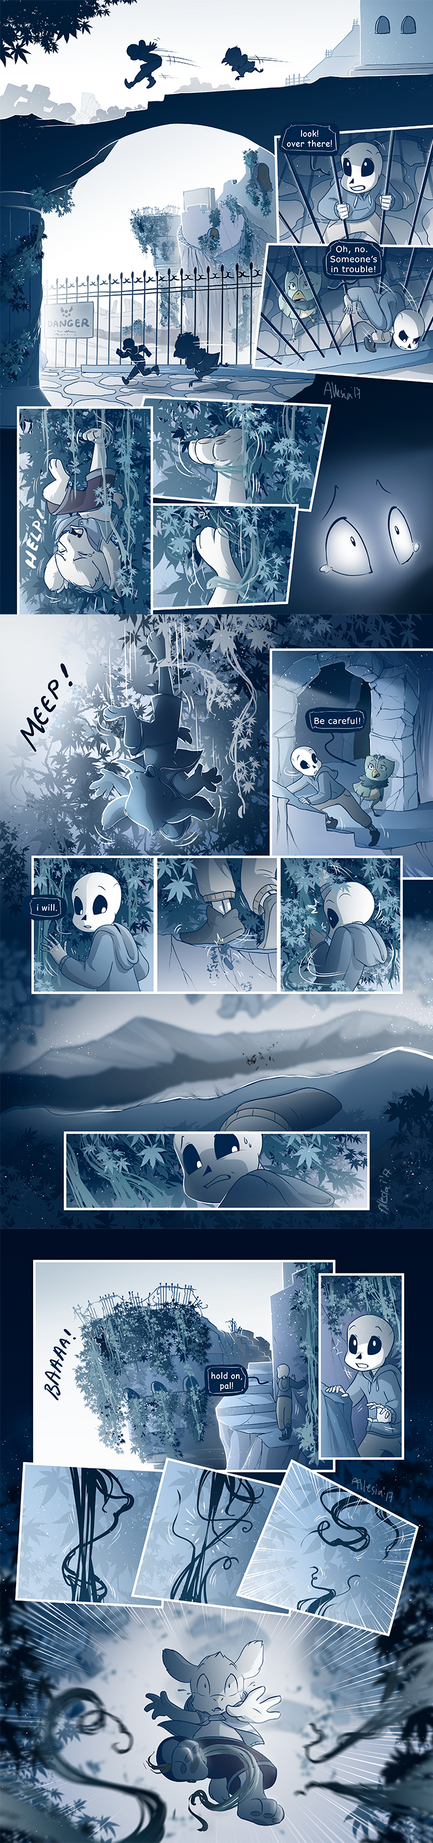 Timetale - Chapter 02 - Part I - Page 54-56 by AllesiaTheHedge